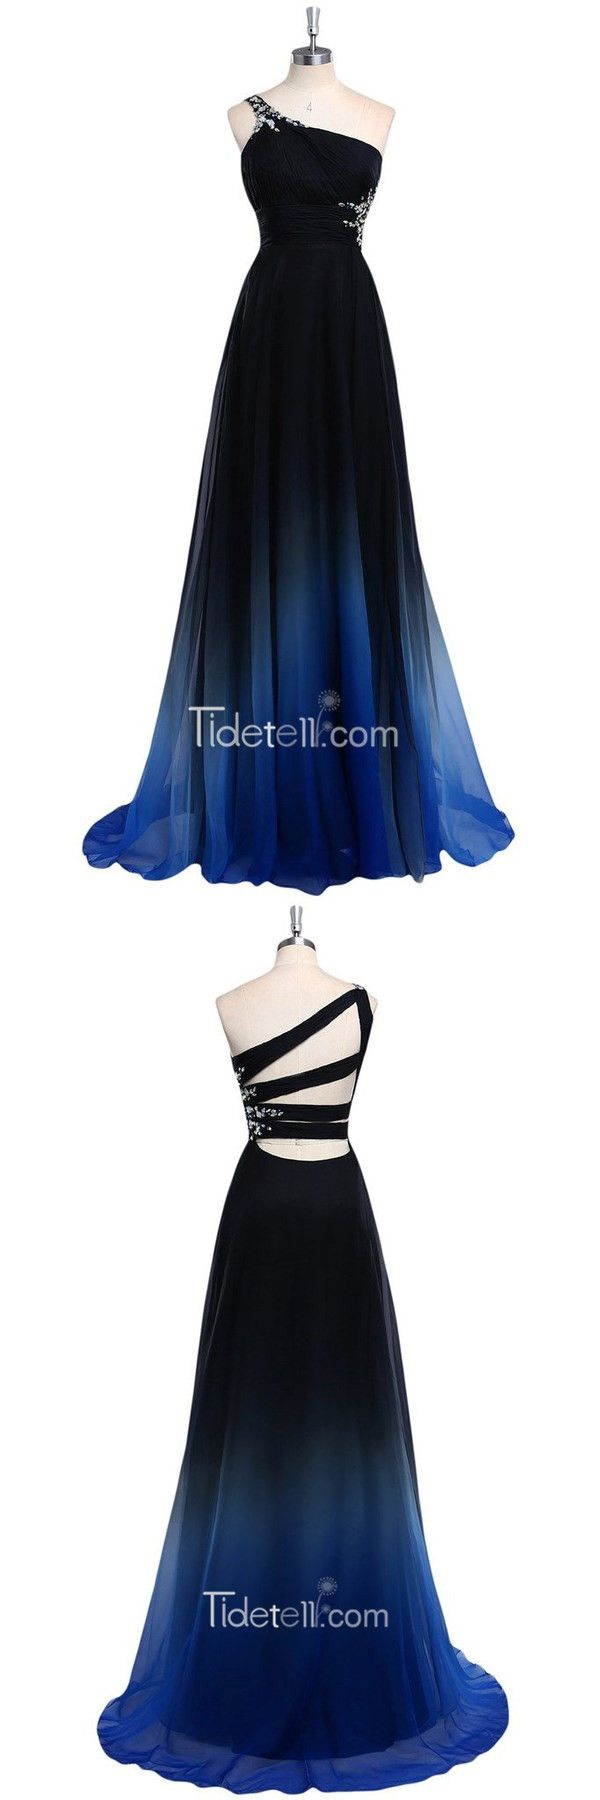 Aline oneshoulder sweep train navy blue chiffon prom dress with